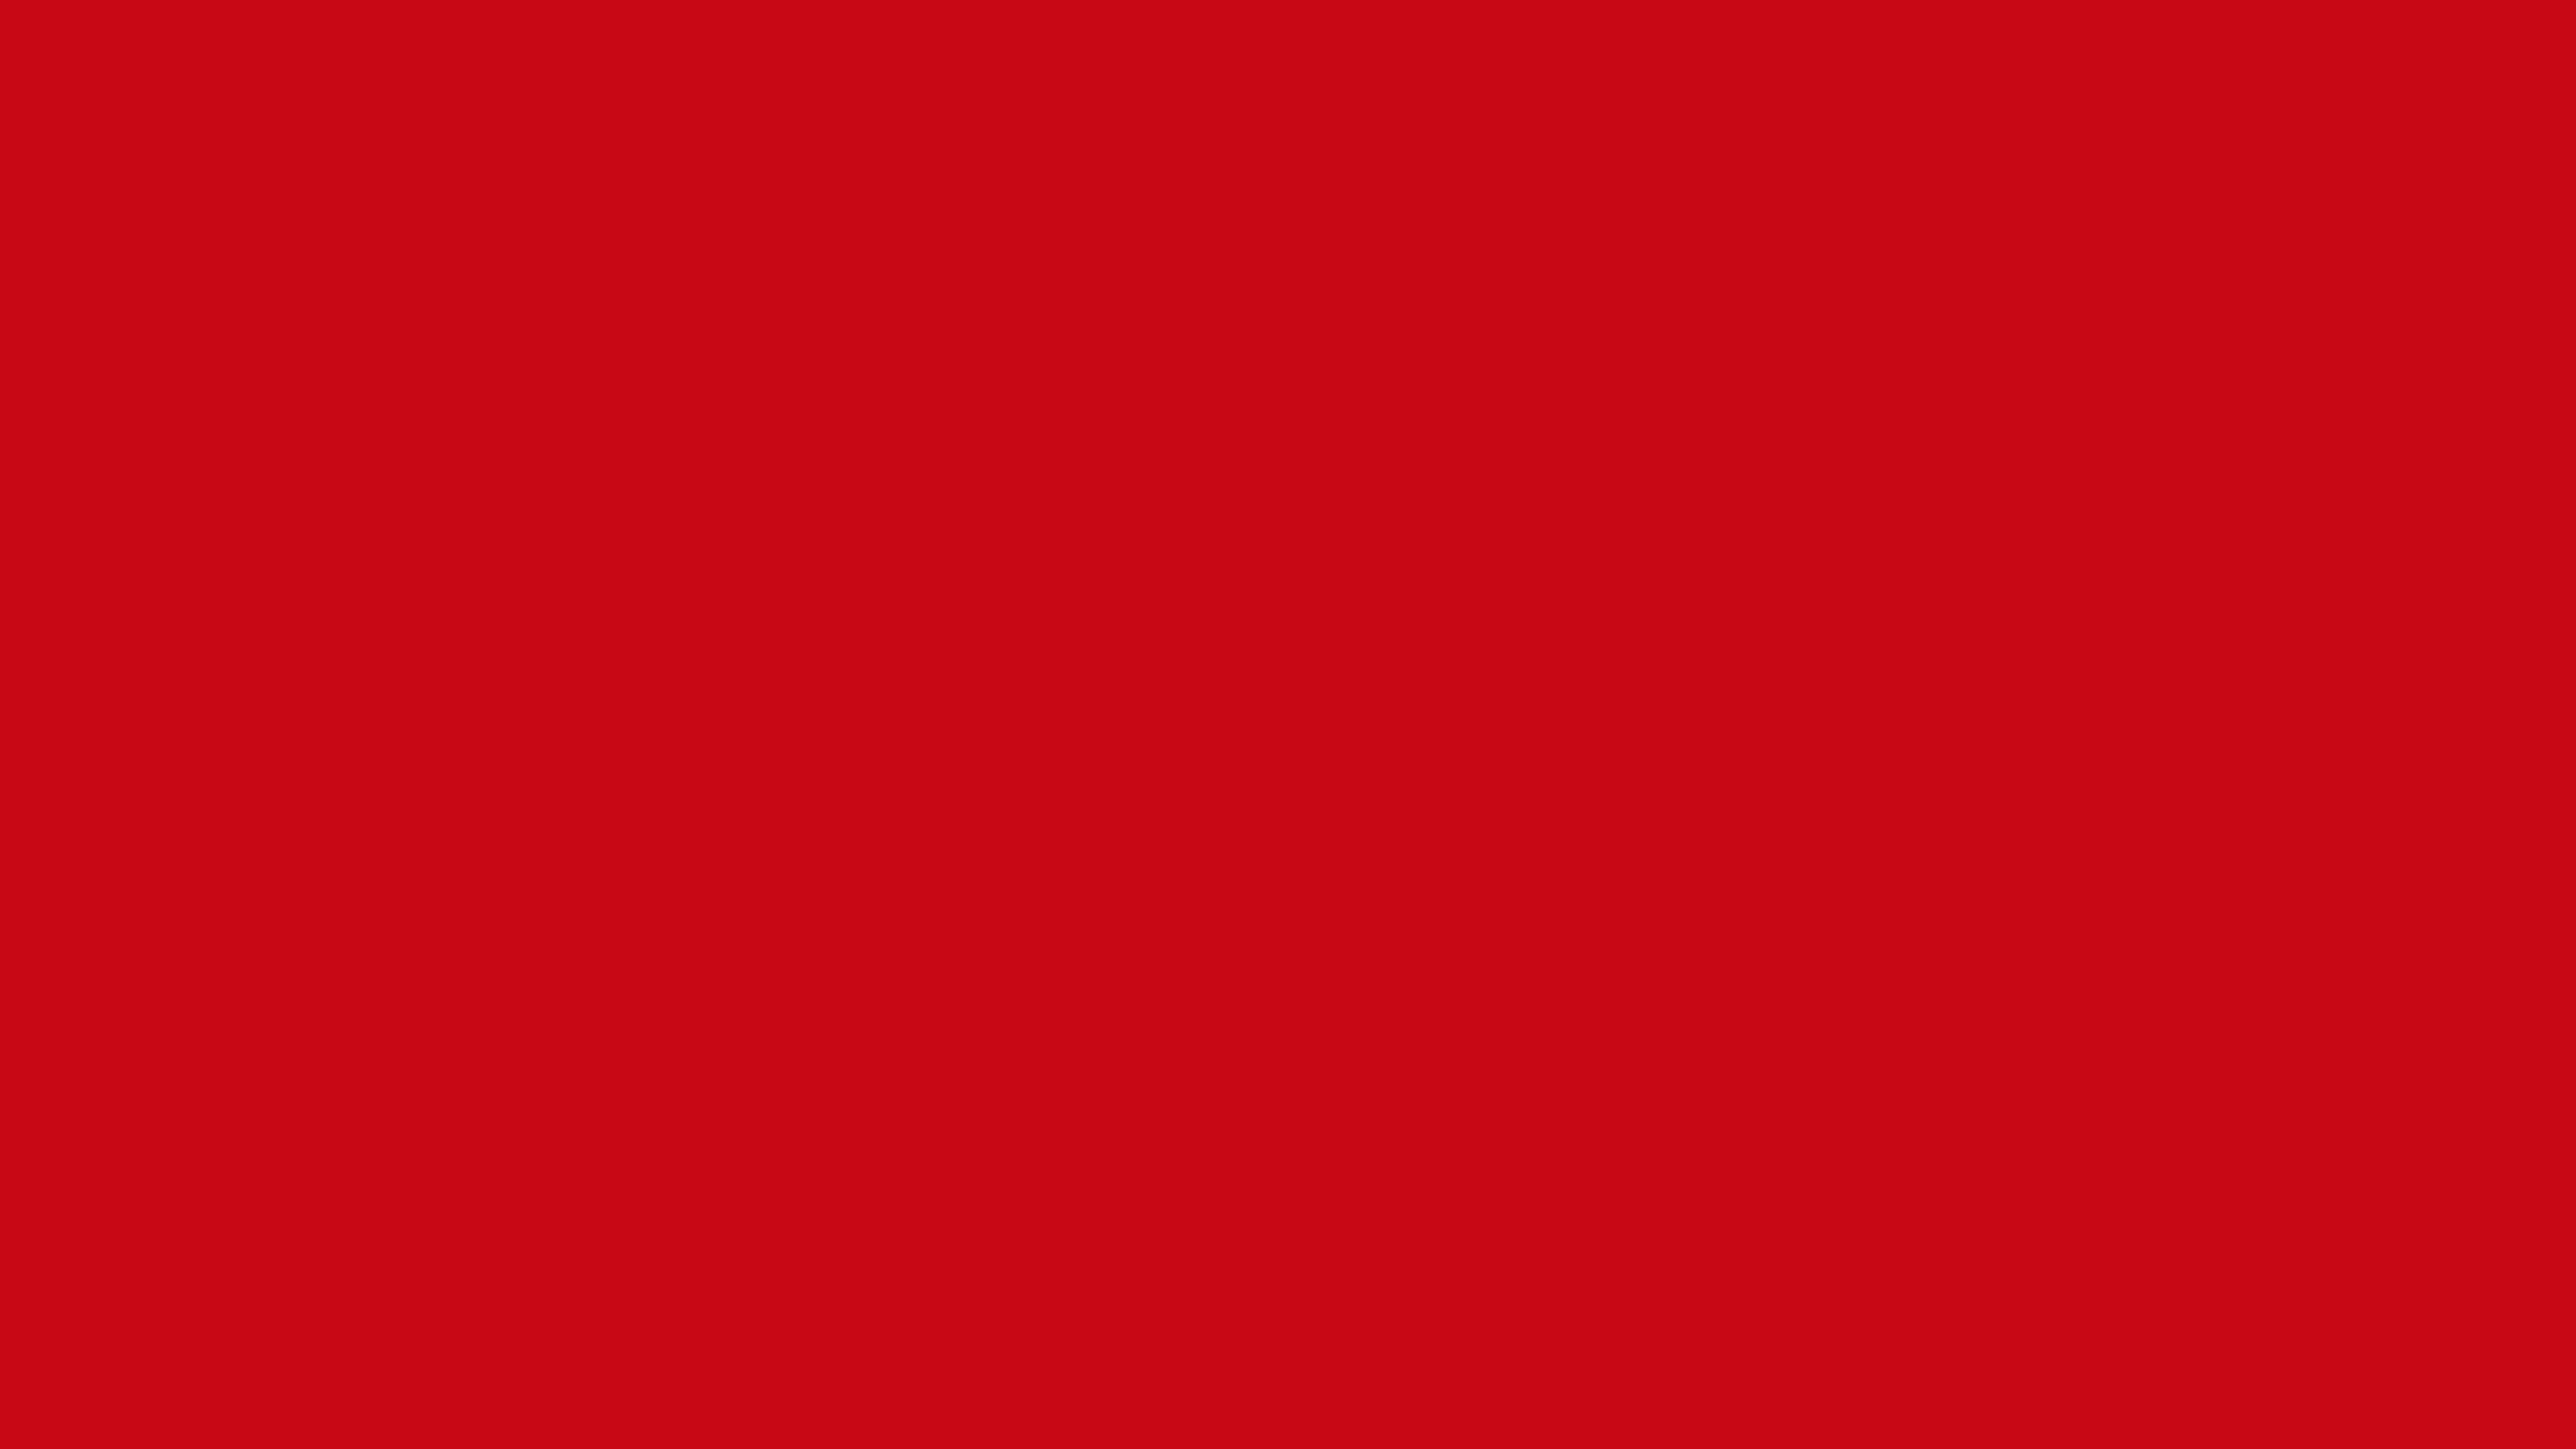 4096x2304 Venetian Red Solid Color Background